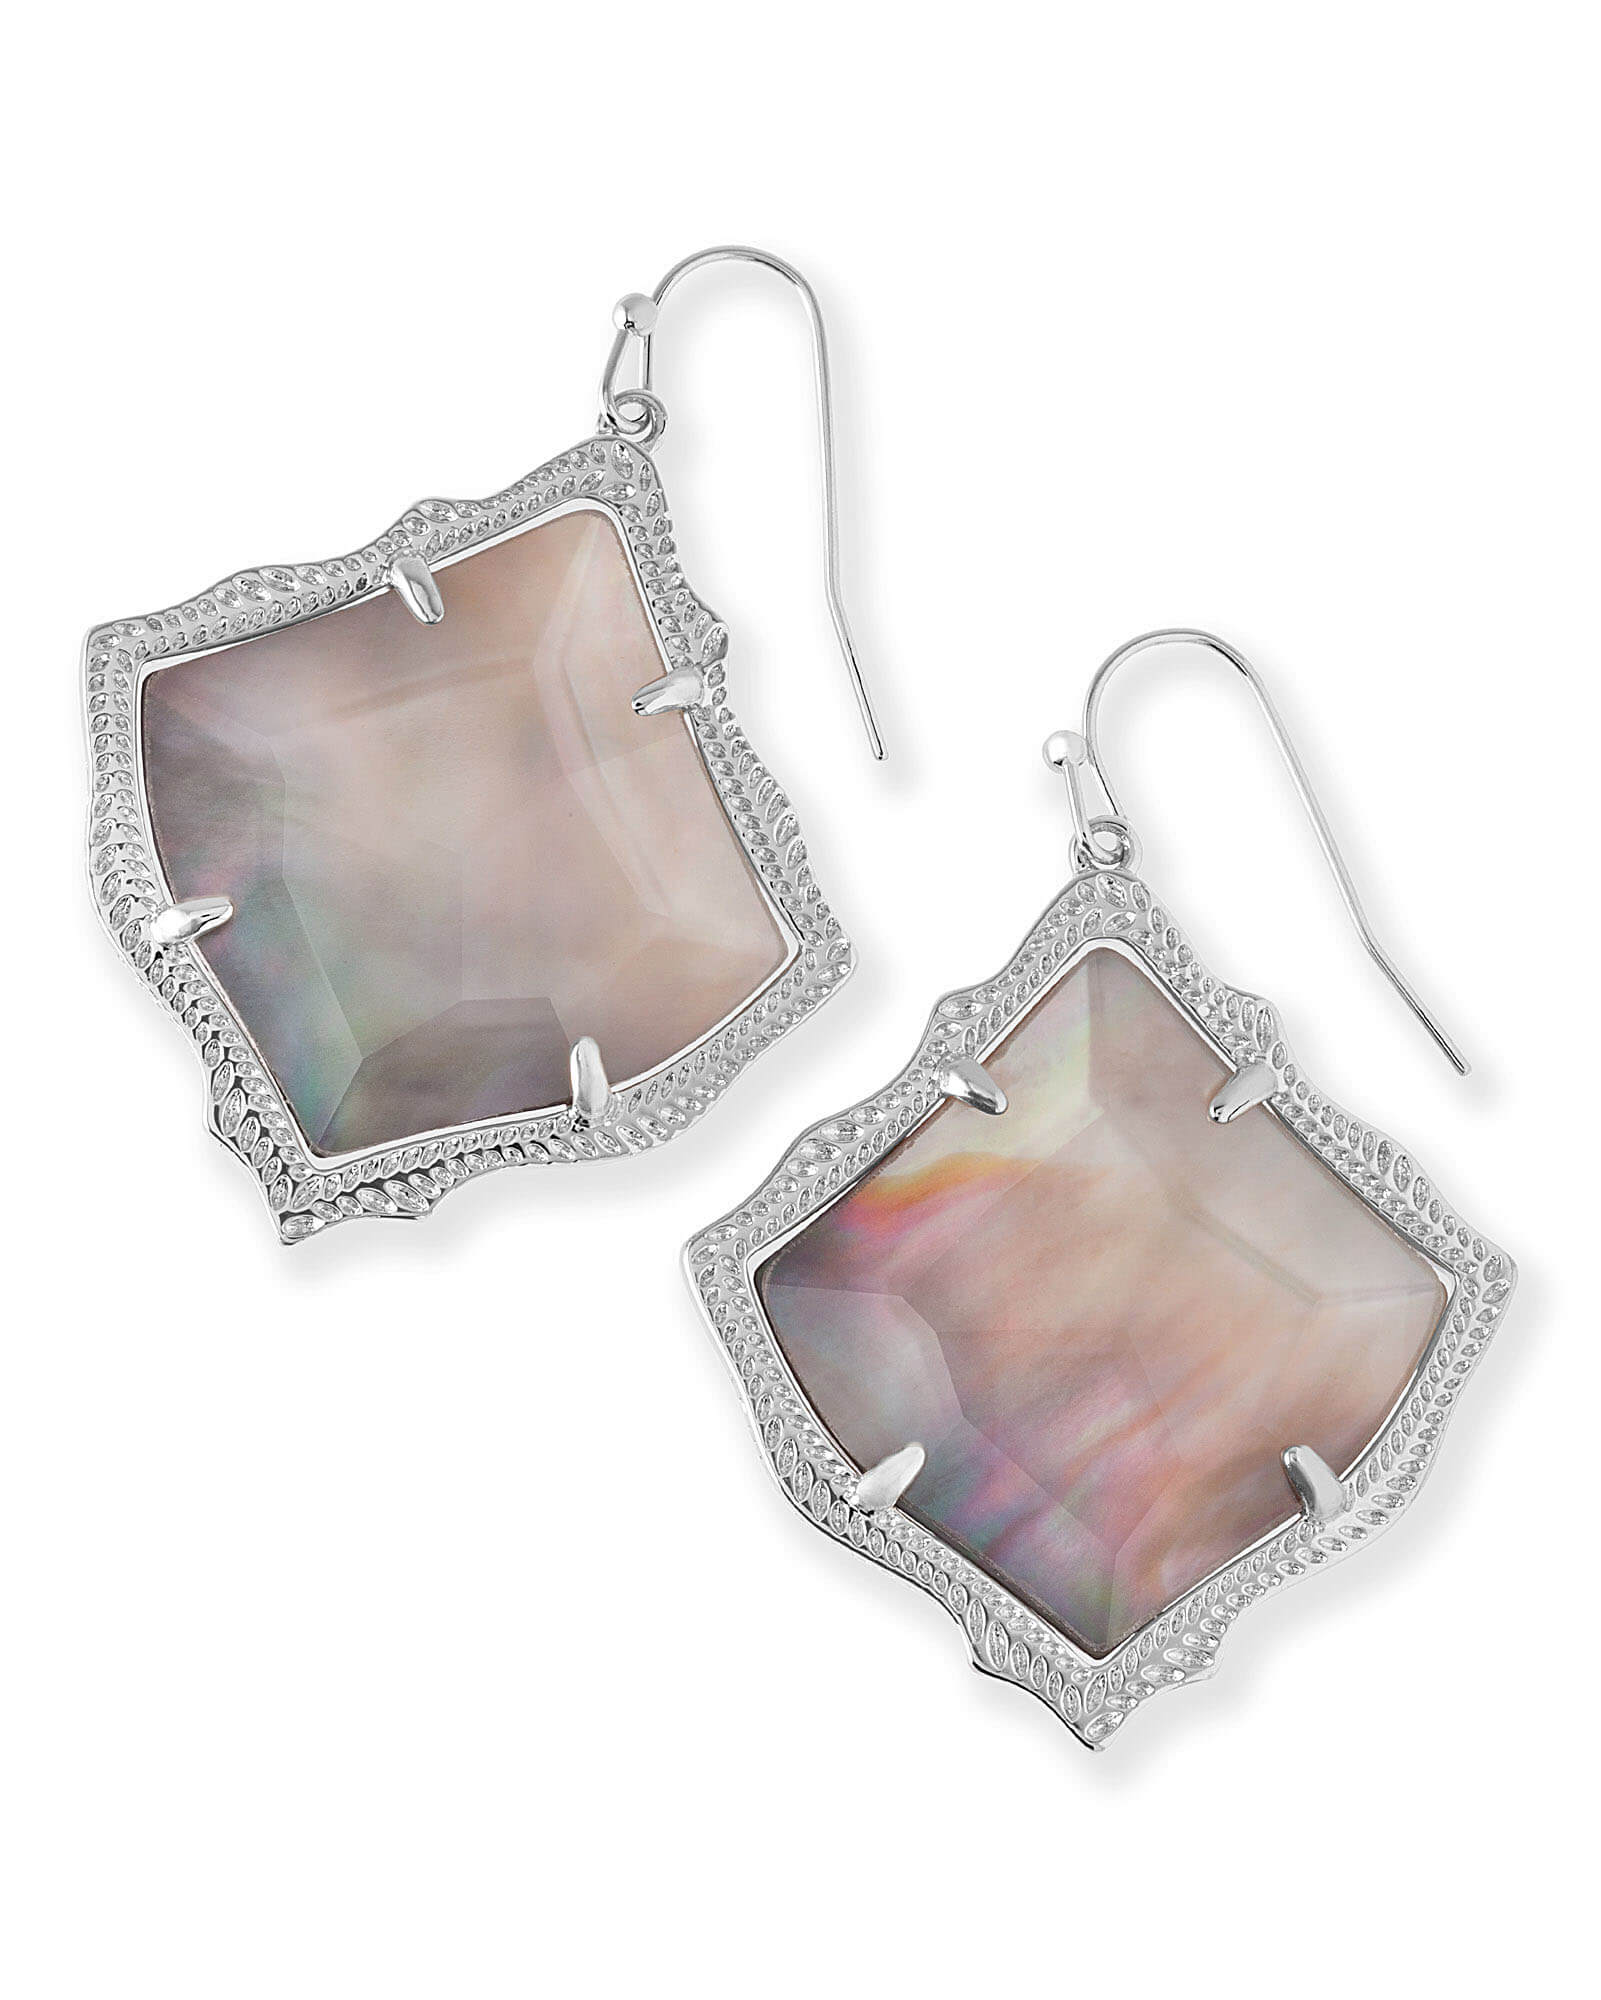 Kirsten Drop Earrings in Silver